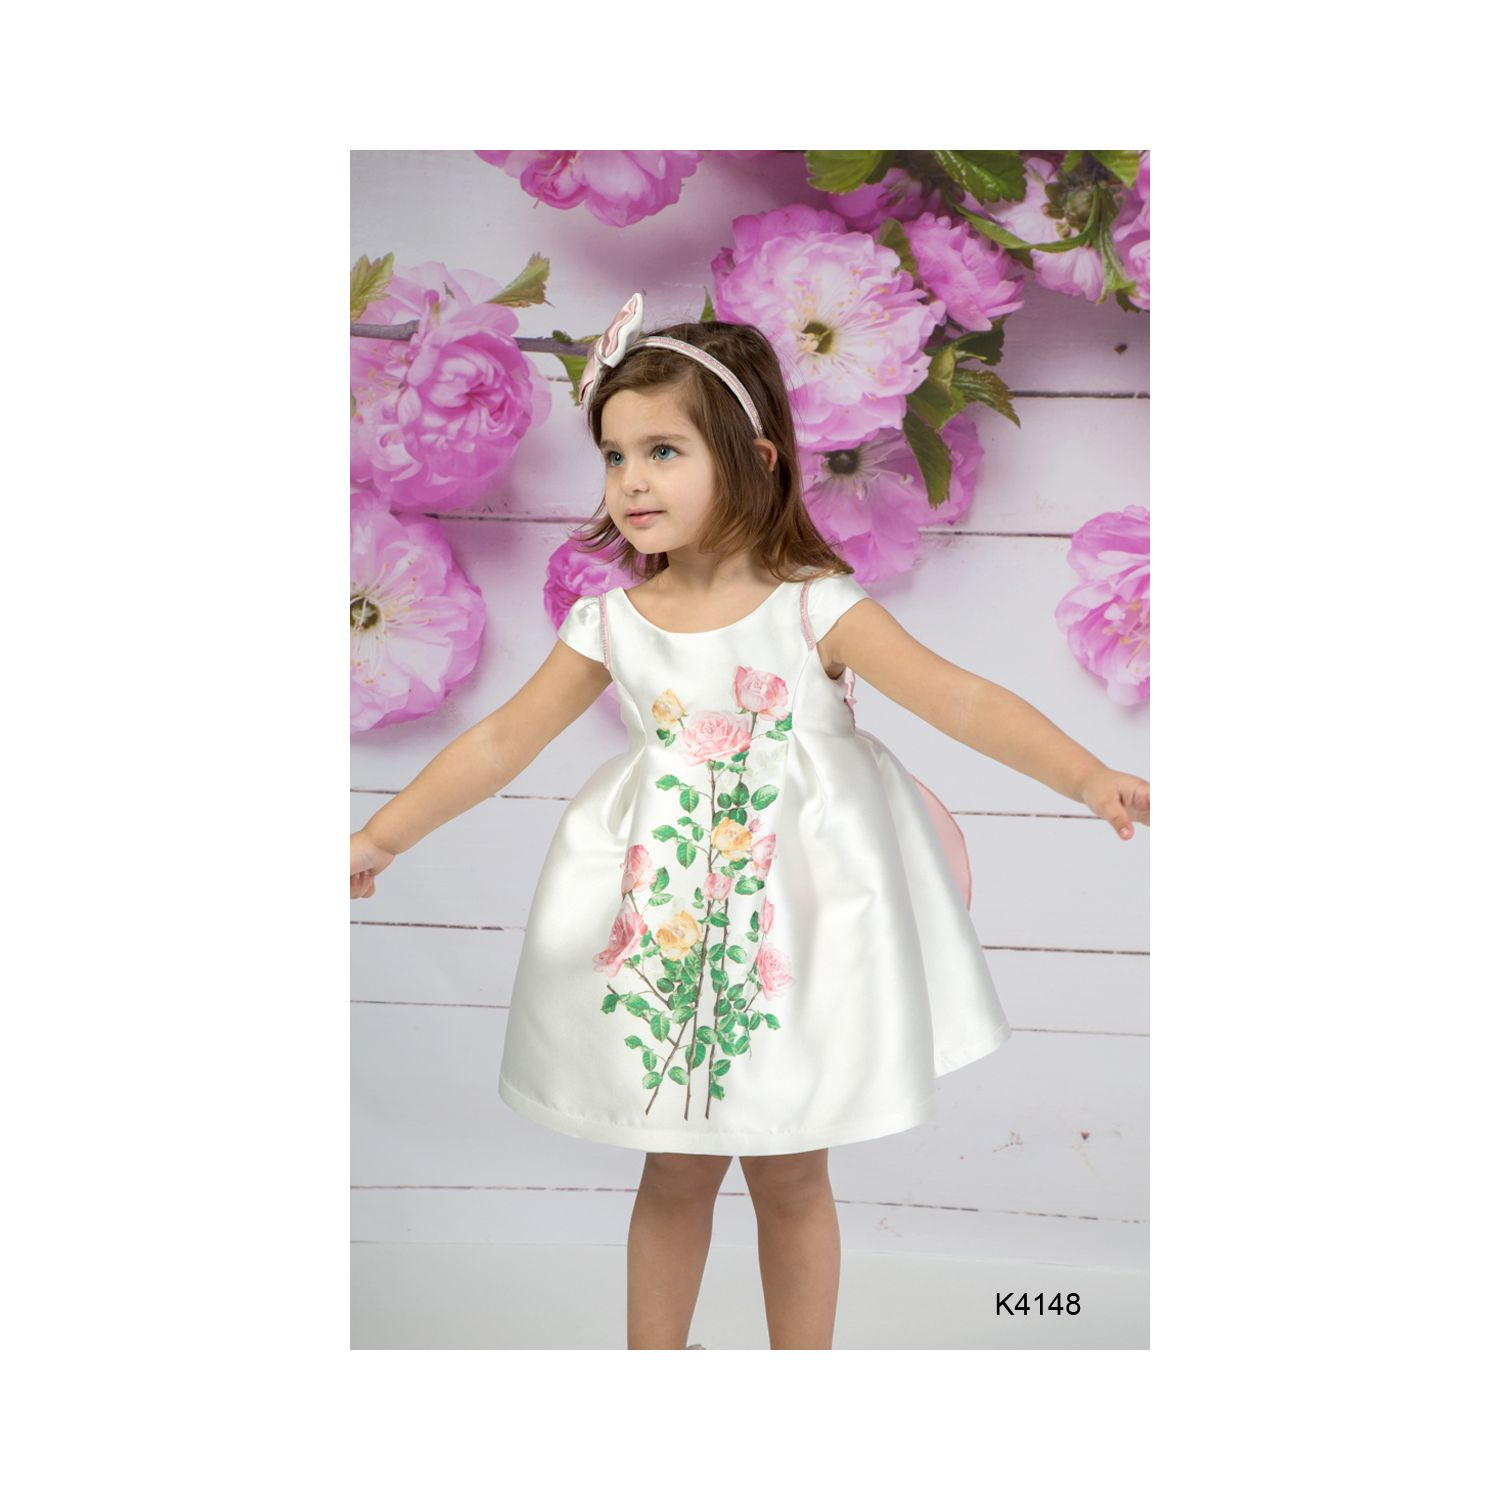 Floral christening clothes for girls K4148